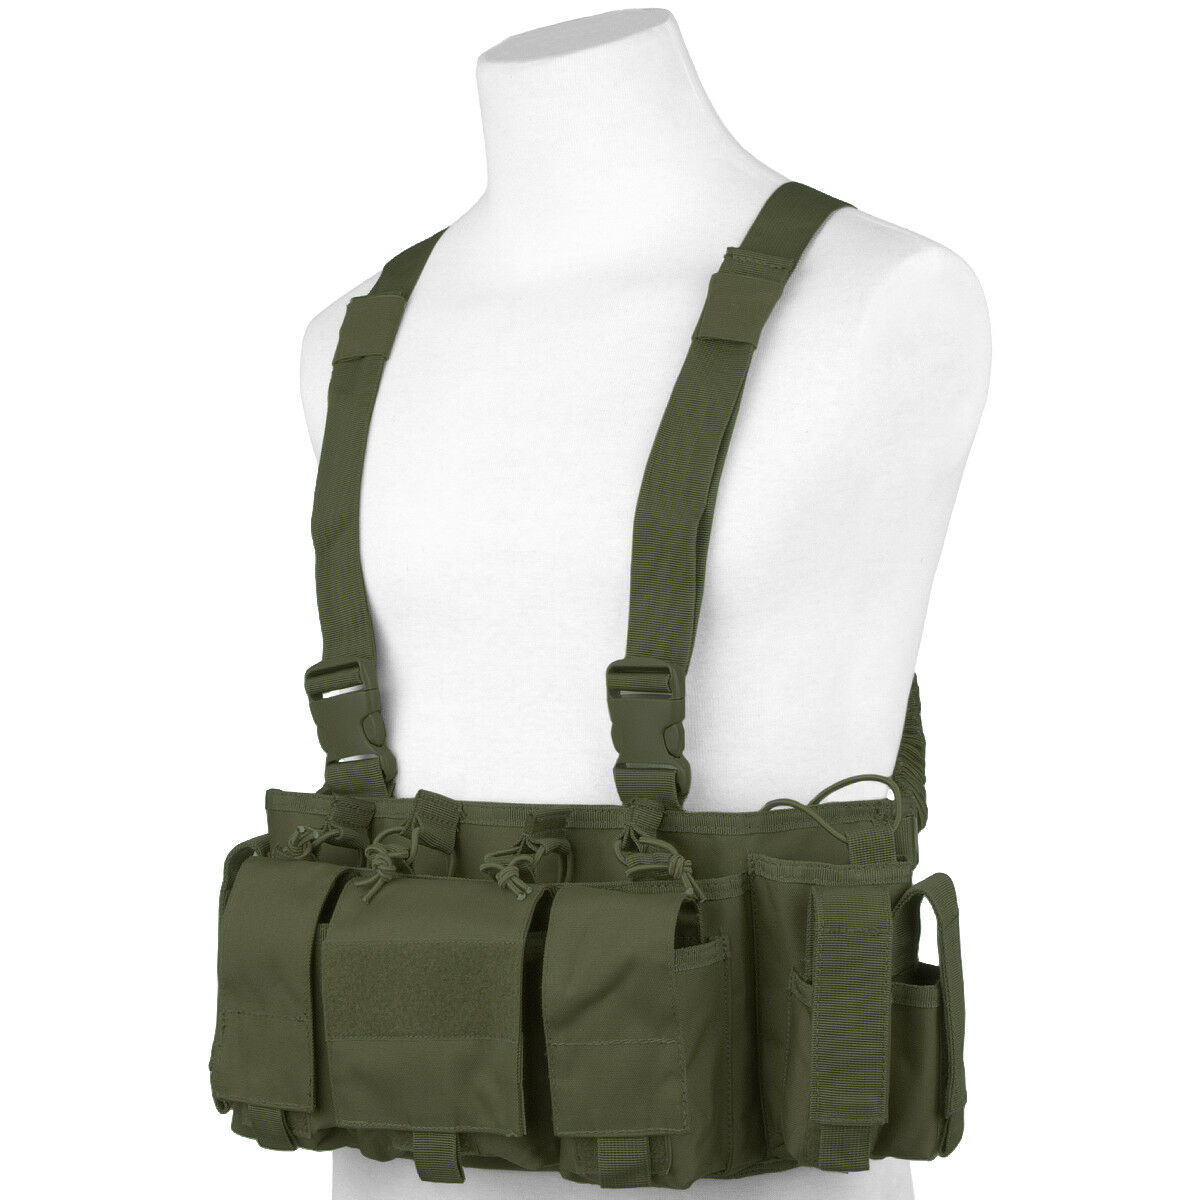 Viper Special Ops Tactical Chest Rig Jagd Paintball Ammo Carrier-Olive Grün